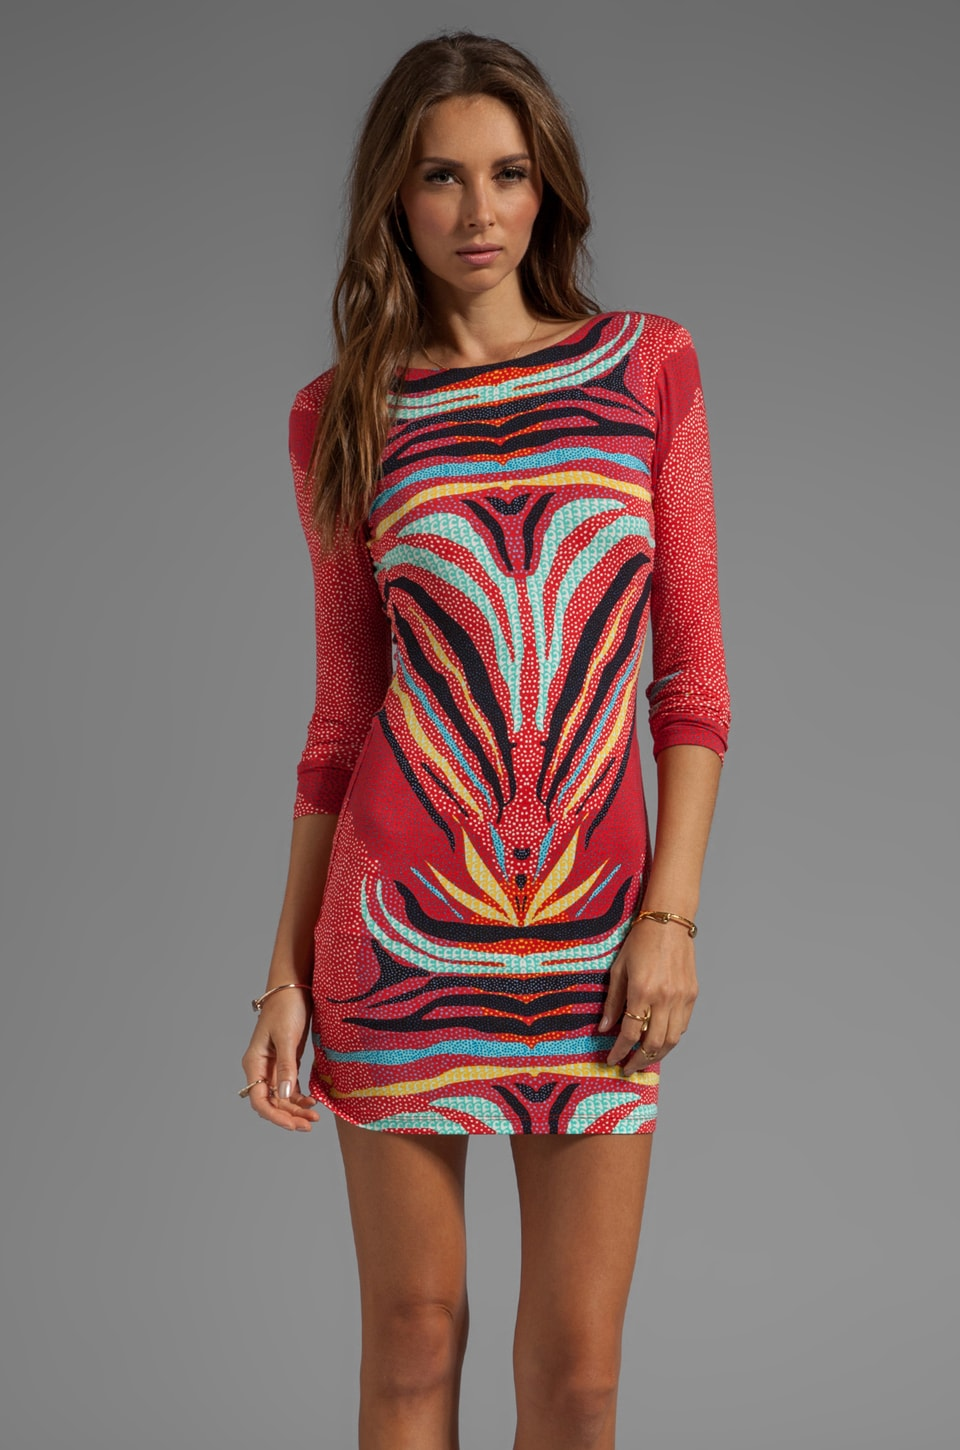 Mara Hoffman Scoop Back Mini Dress in Phoenix Red